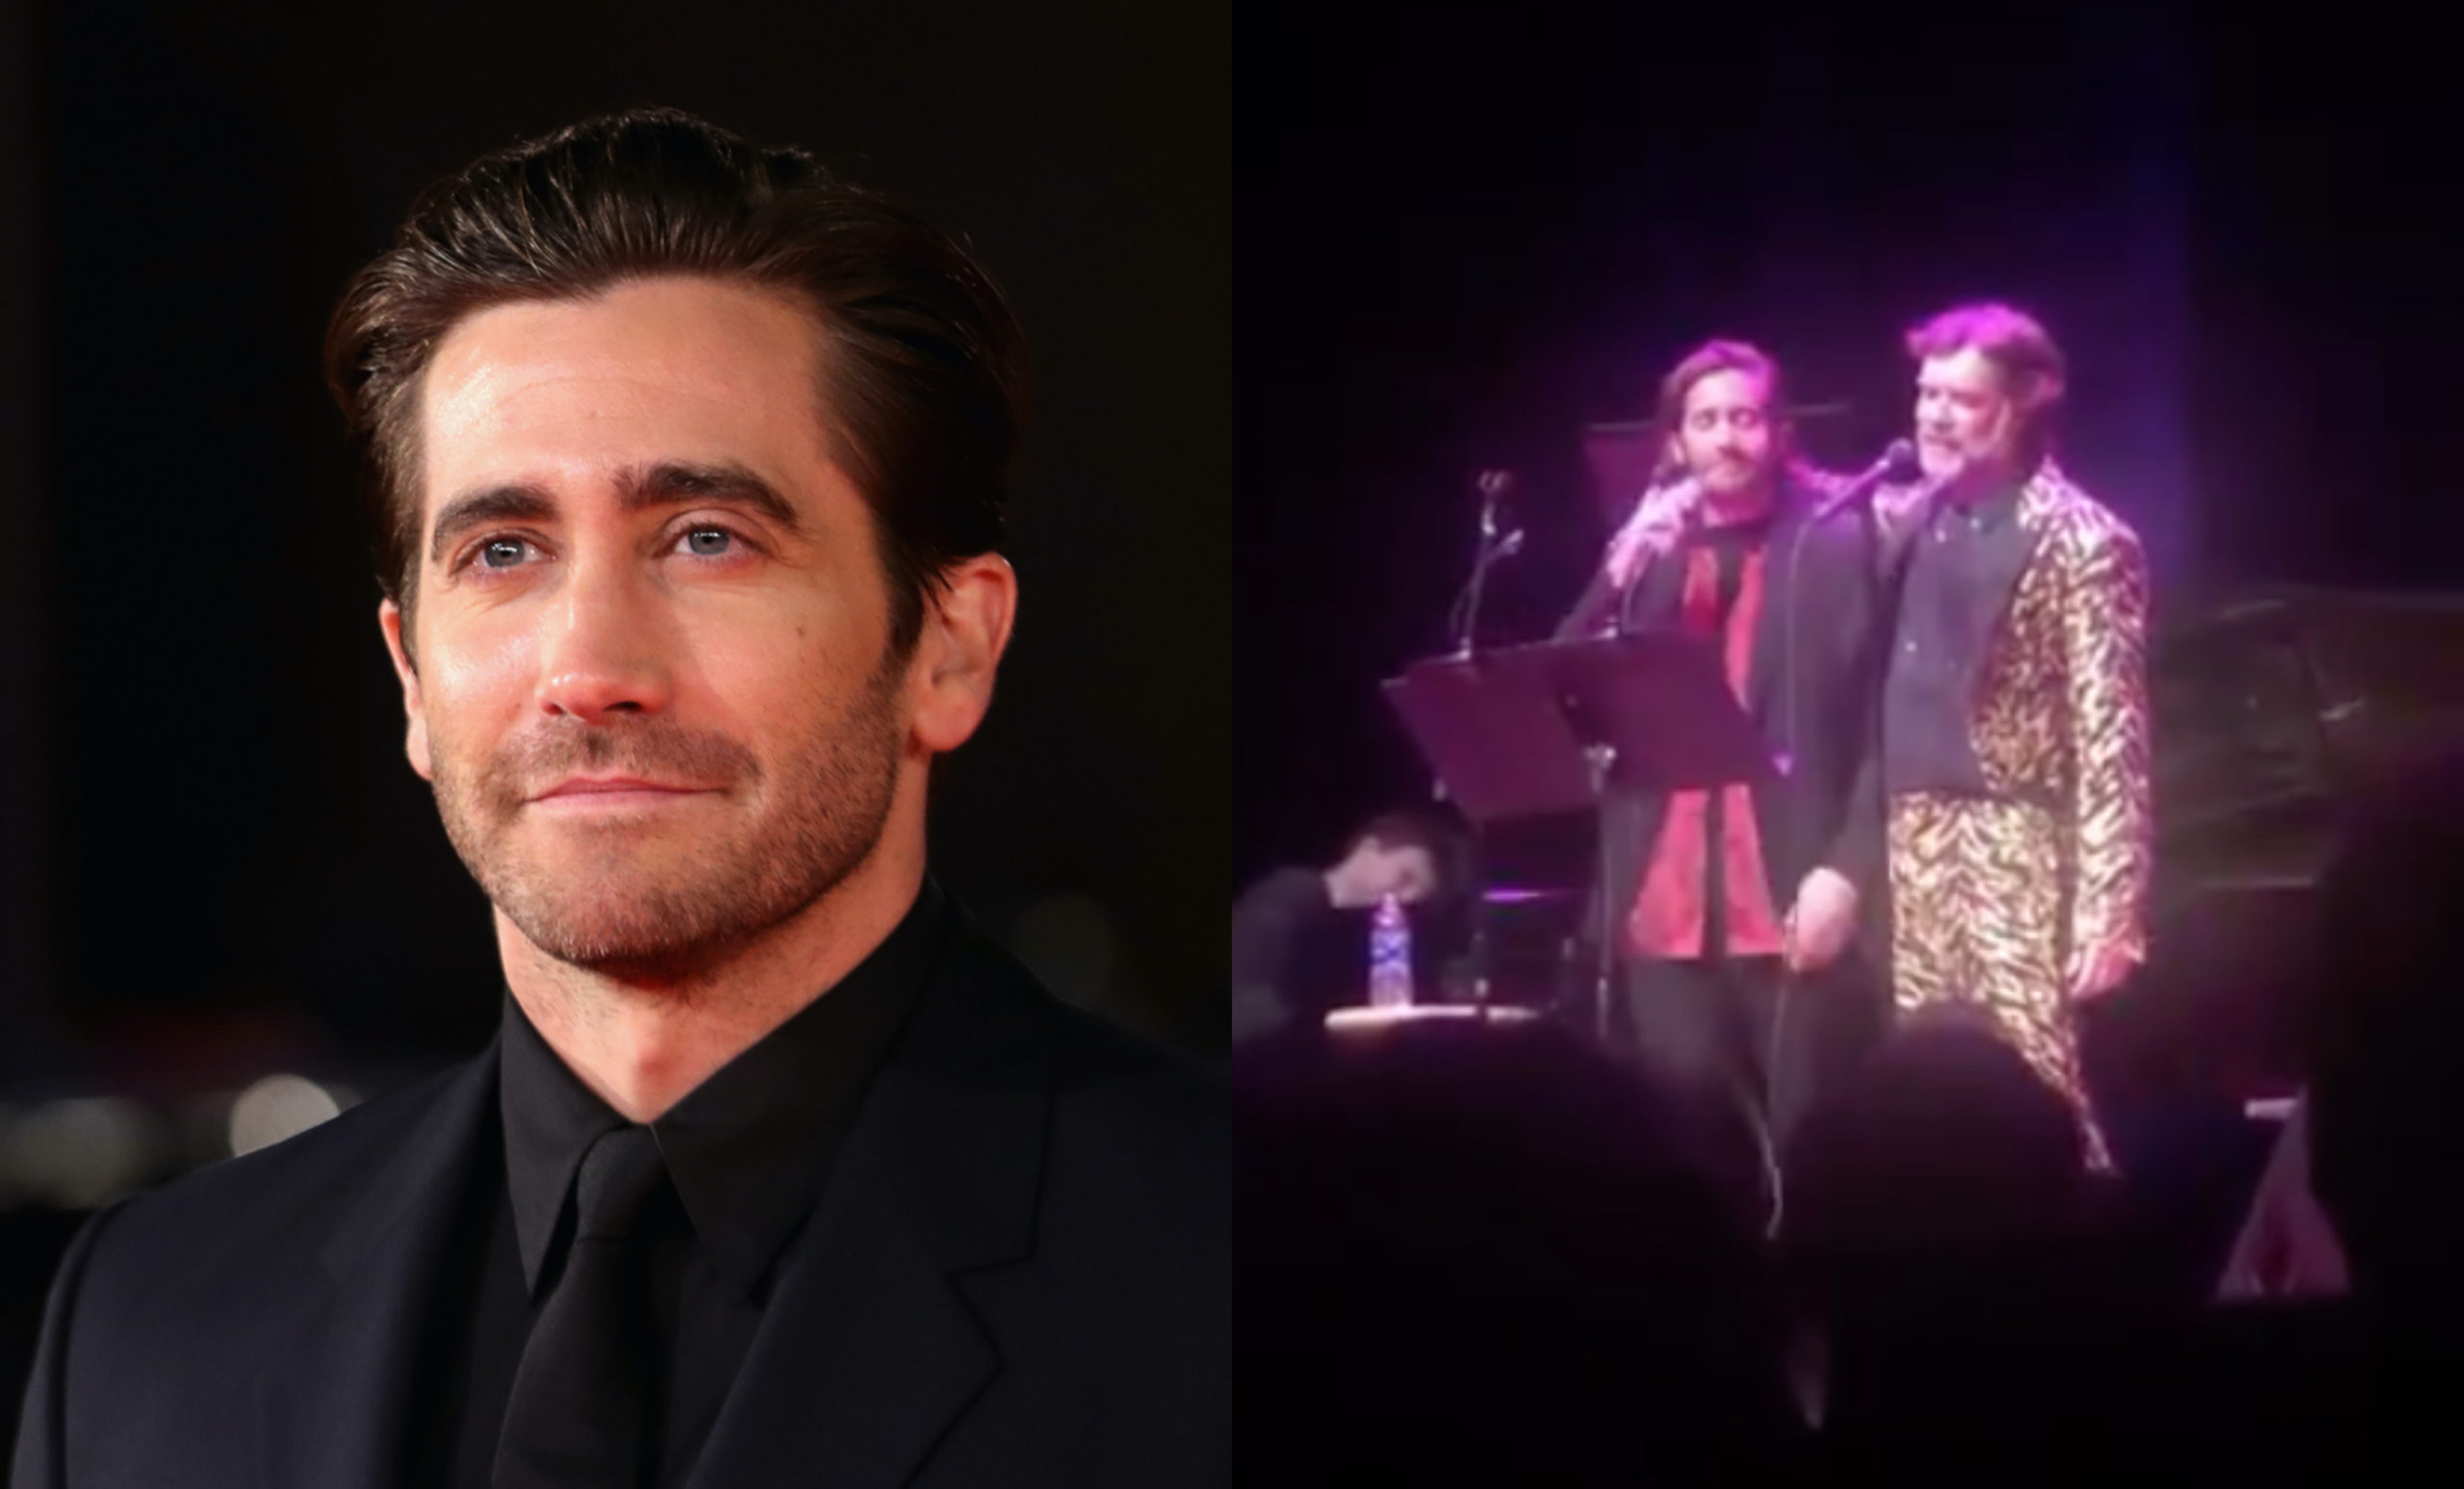 Jake Gyllenhaal and Rufus Wainwright sang The Everly Brothers and it caused nationwide swooning. (Vittorio Zunino Celotto/Getty Images/Screen capture via Twitter)